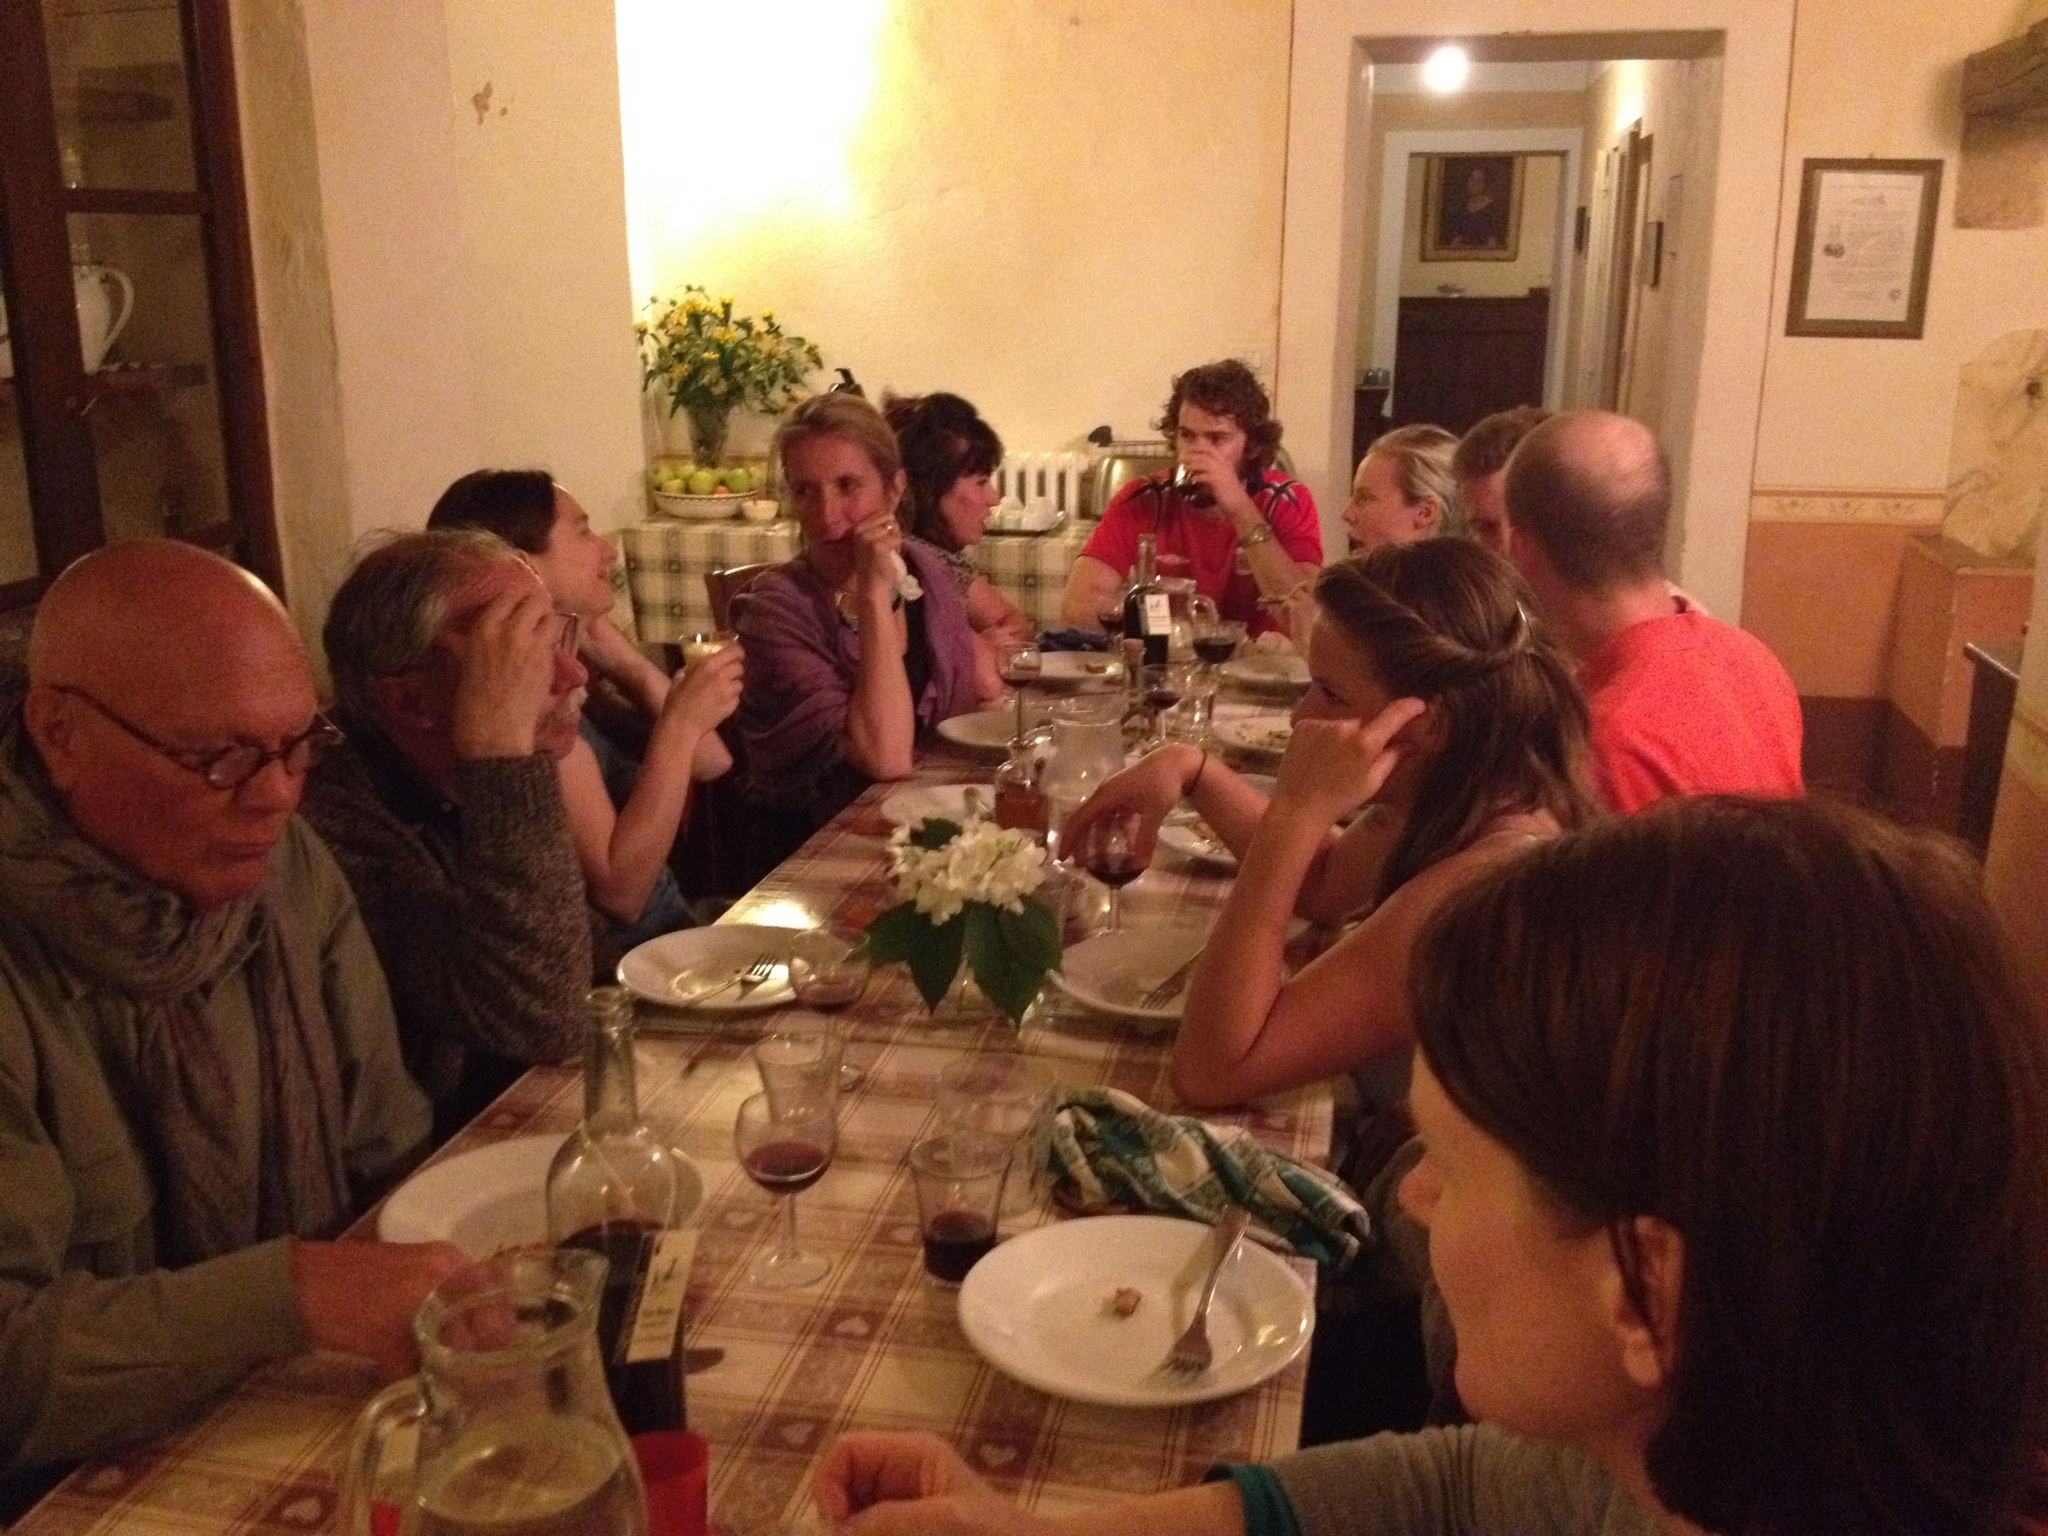 The evening dinner at Spannocchi included staff, farmers, ranchers, and guests